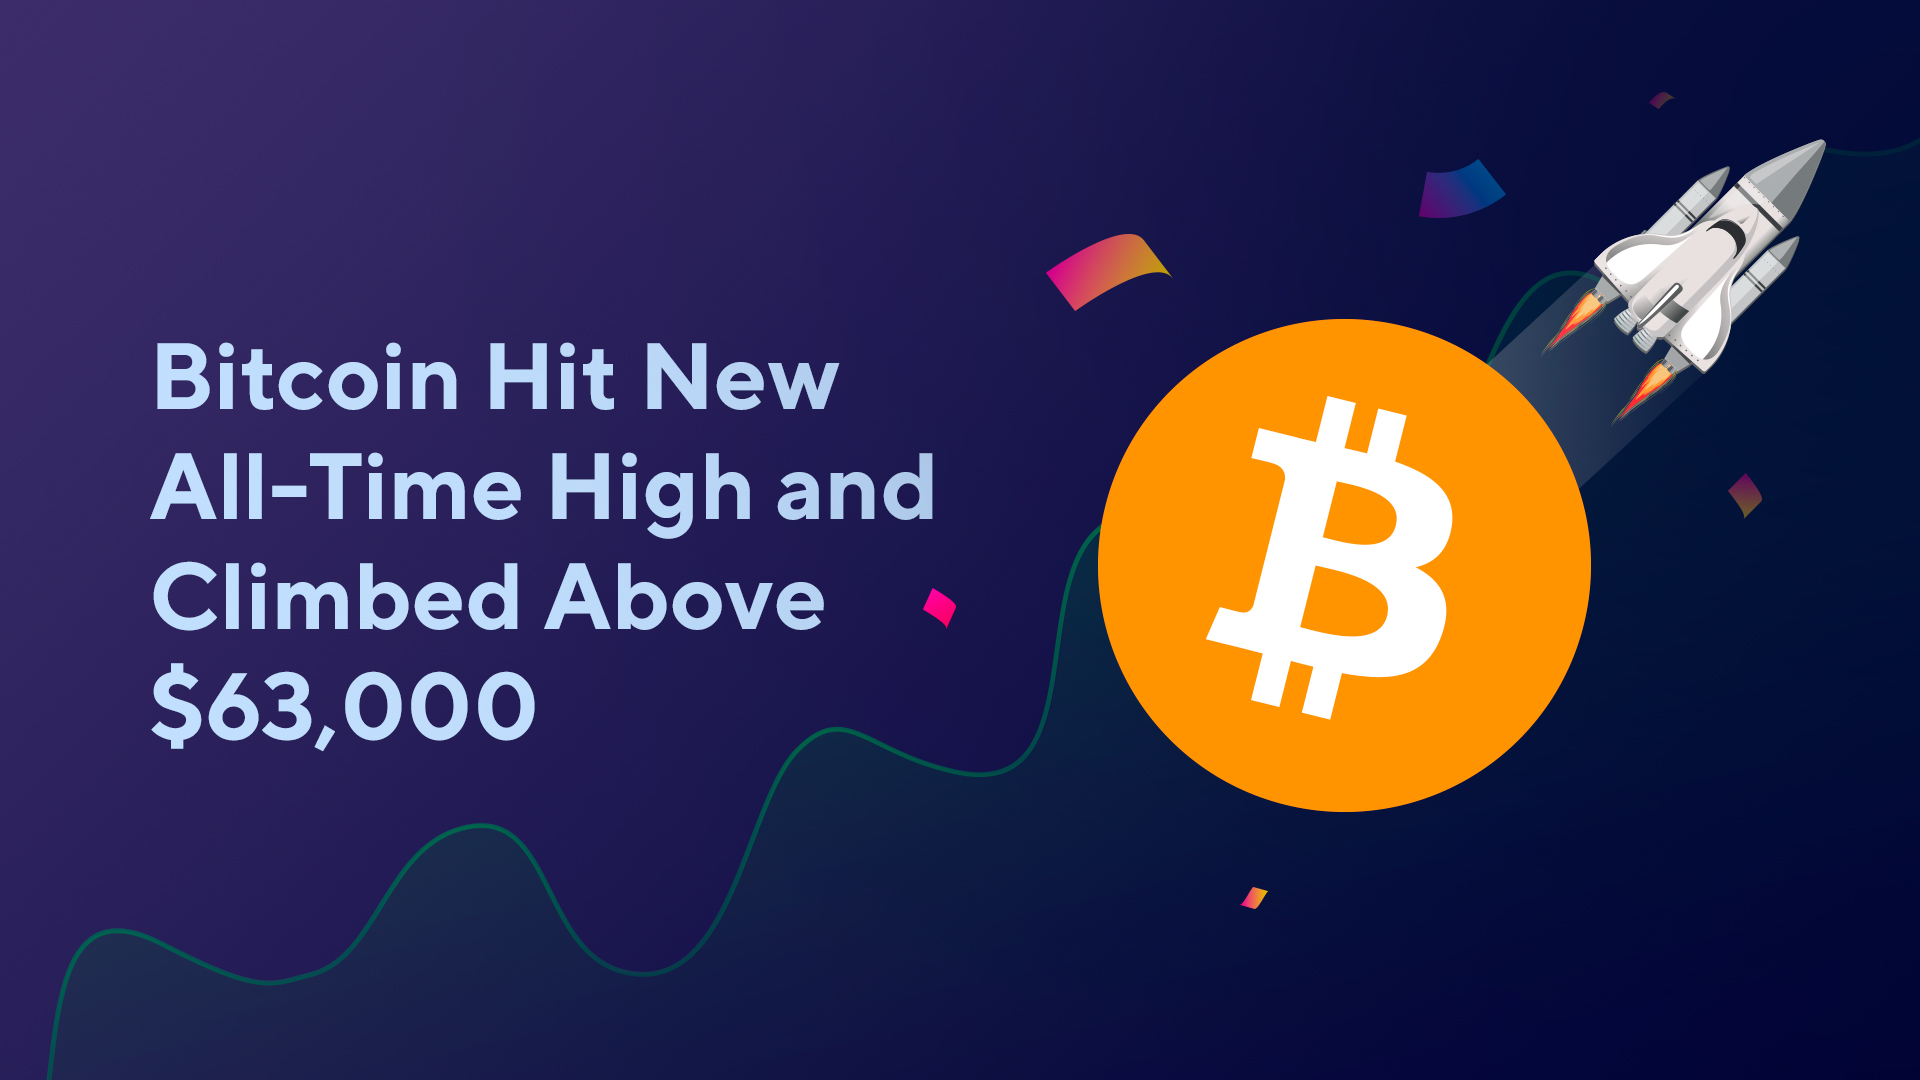 Bitcoin Hit New All-Time High and Climbed Above $63,000